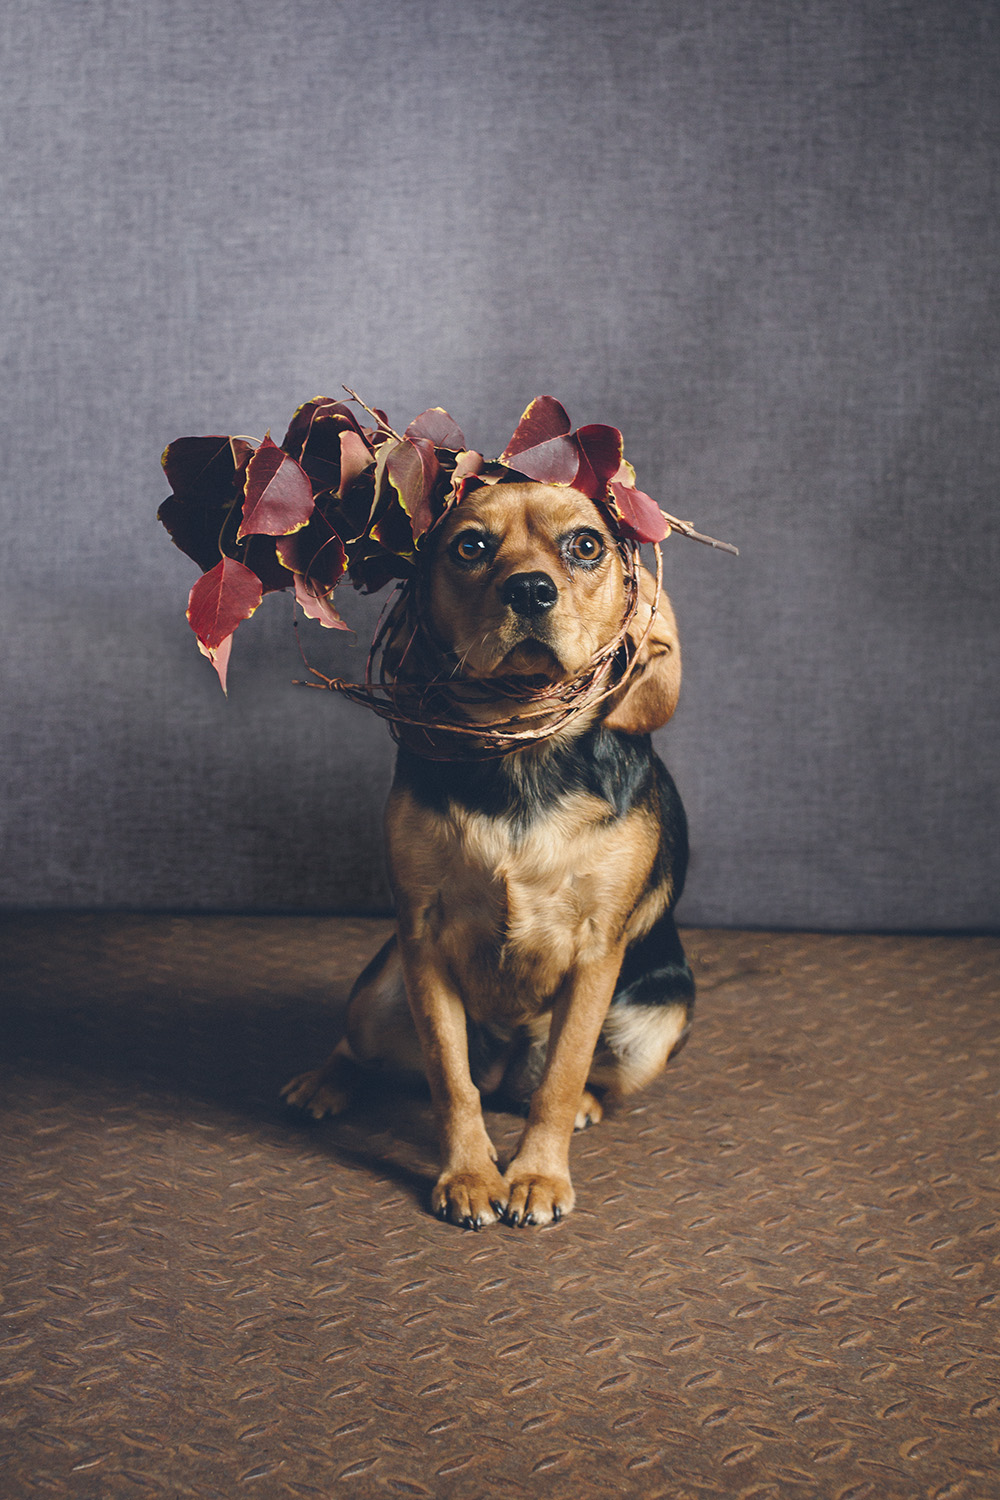 dogs-flowercrown-ihw-029